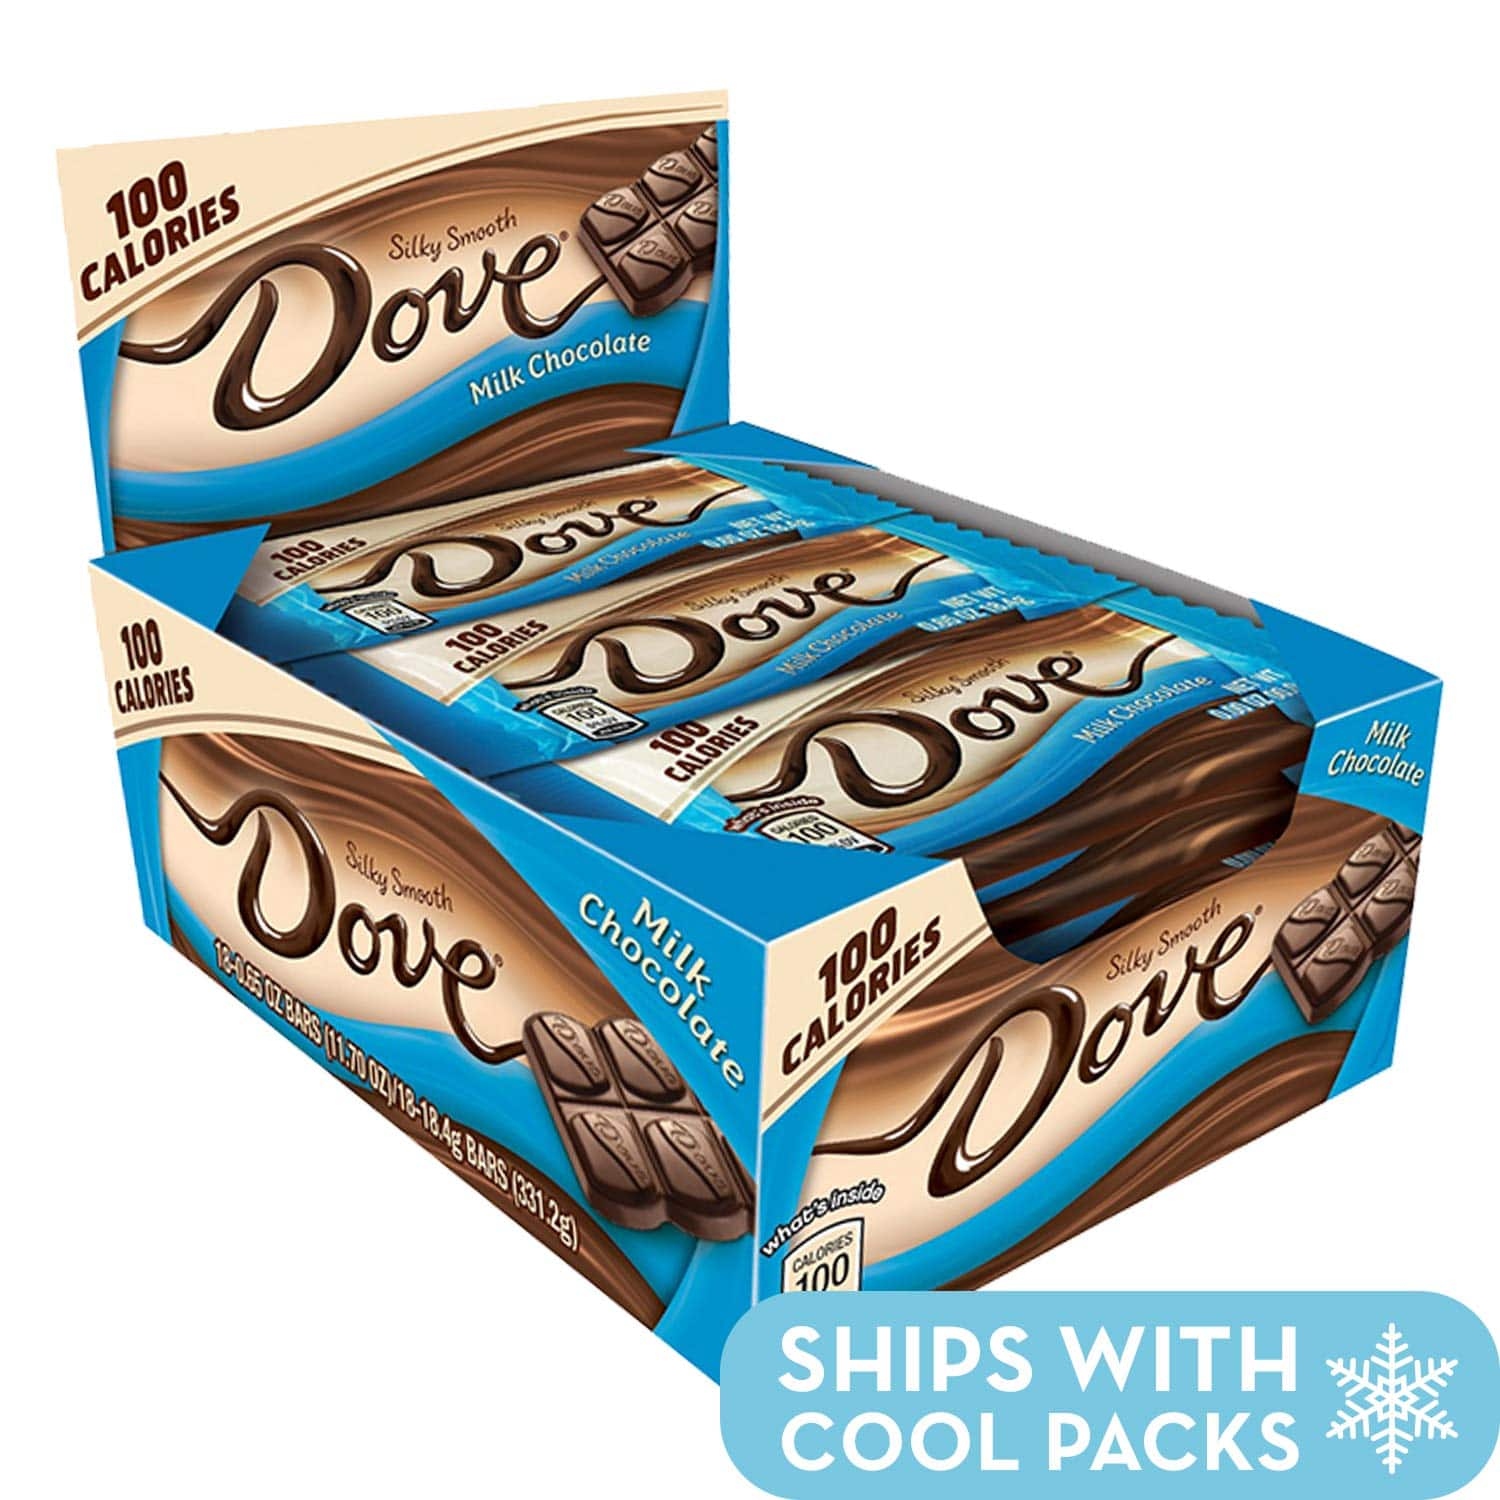 18 count Dove 100 Calories Milk Chocolate Candy Bar 0.65-Ounce Bar: $4.50 or less w/S&S